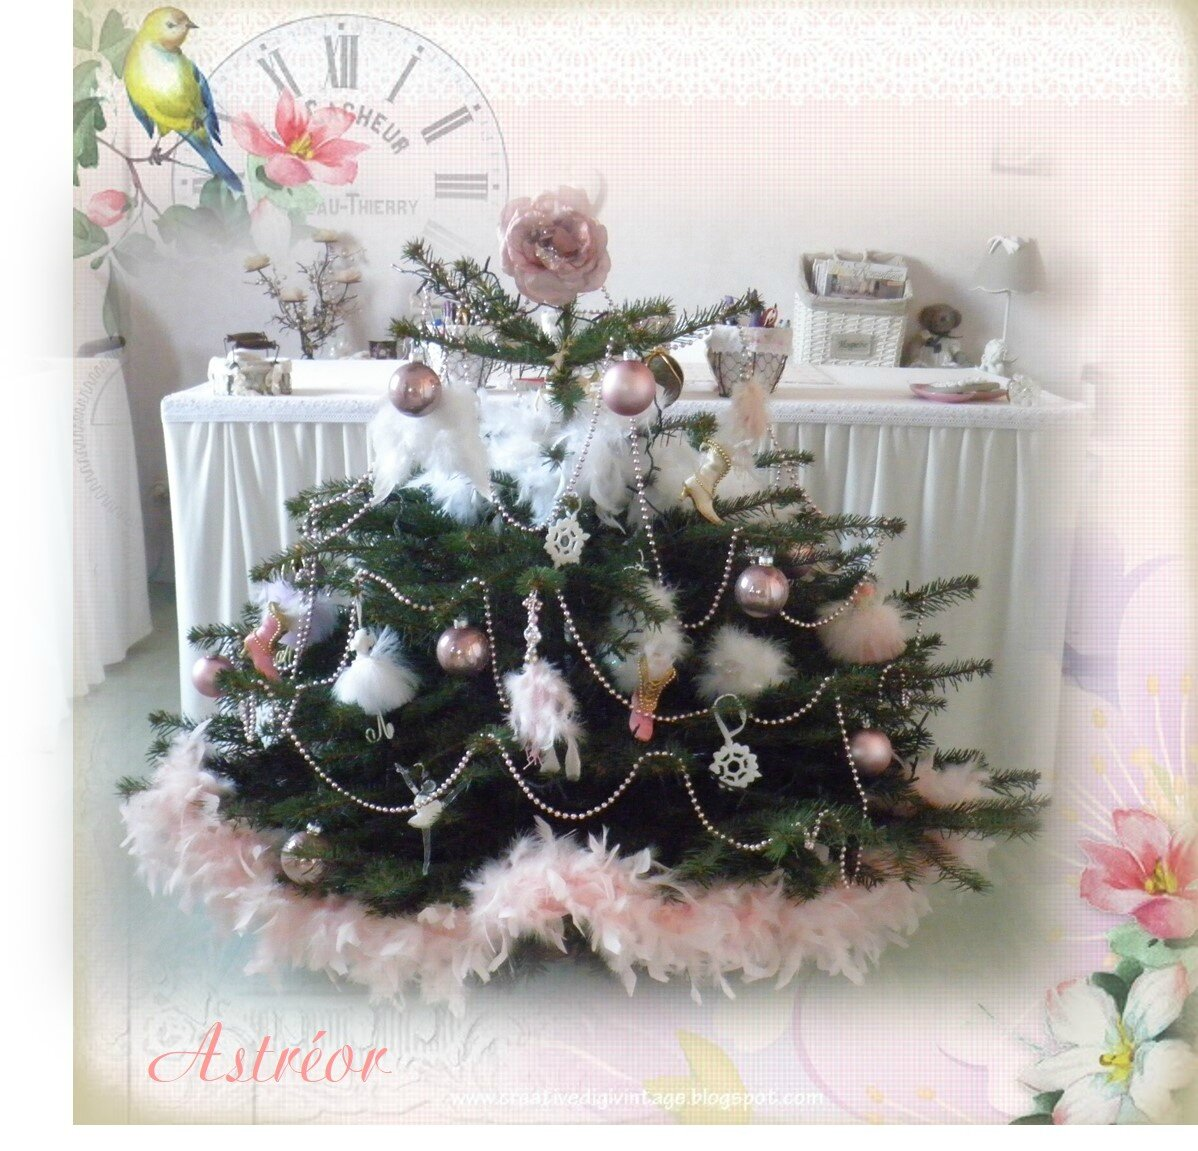 Mon Sapin Shabby Chic Astreor